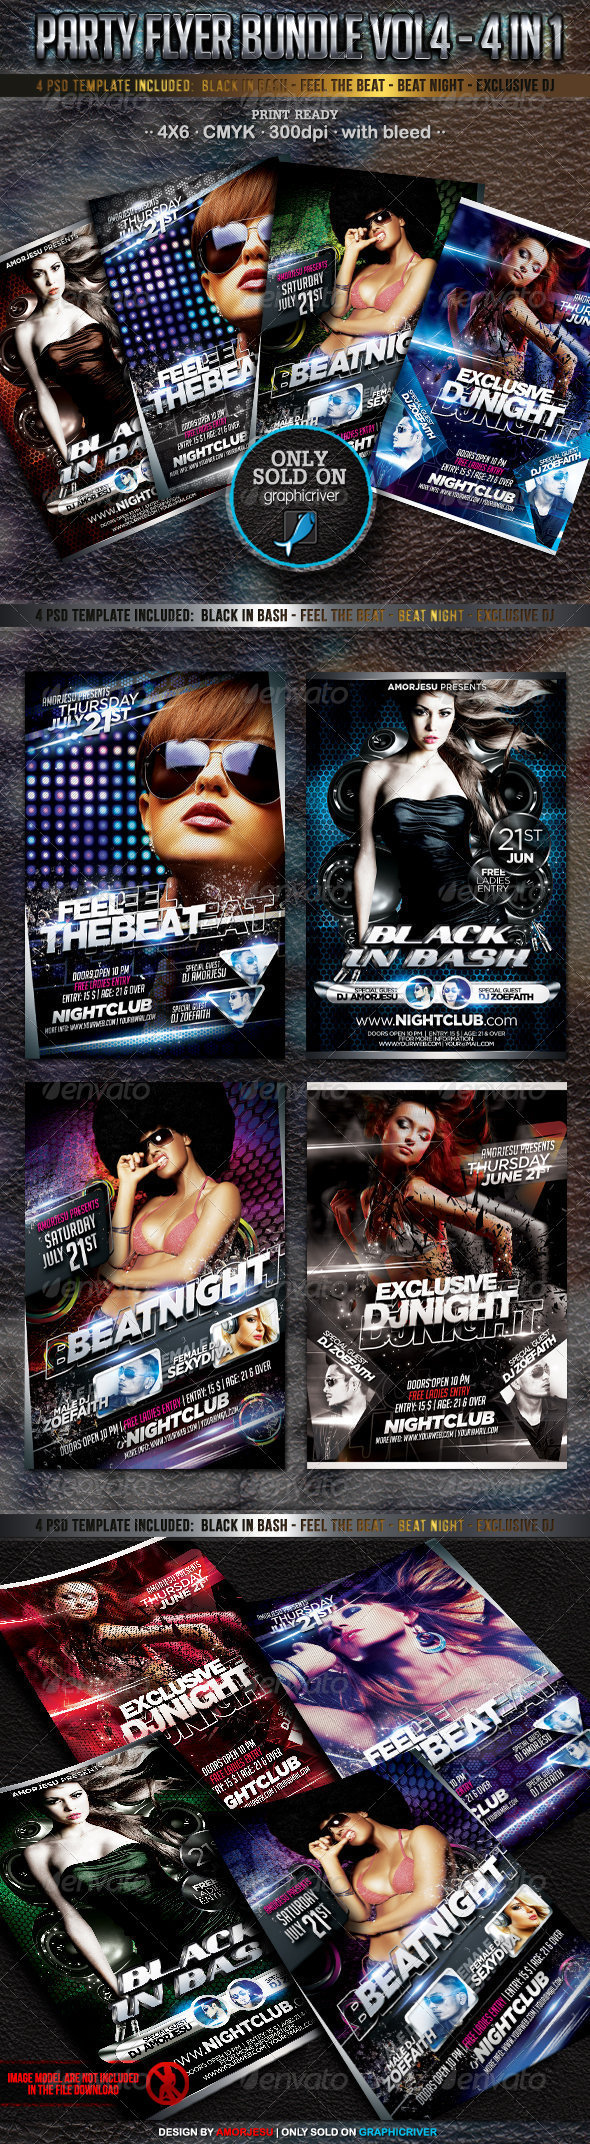 Party Flyer Bundle Vol4 - 4 in 1 - Events Flyers